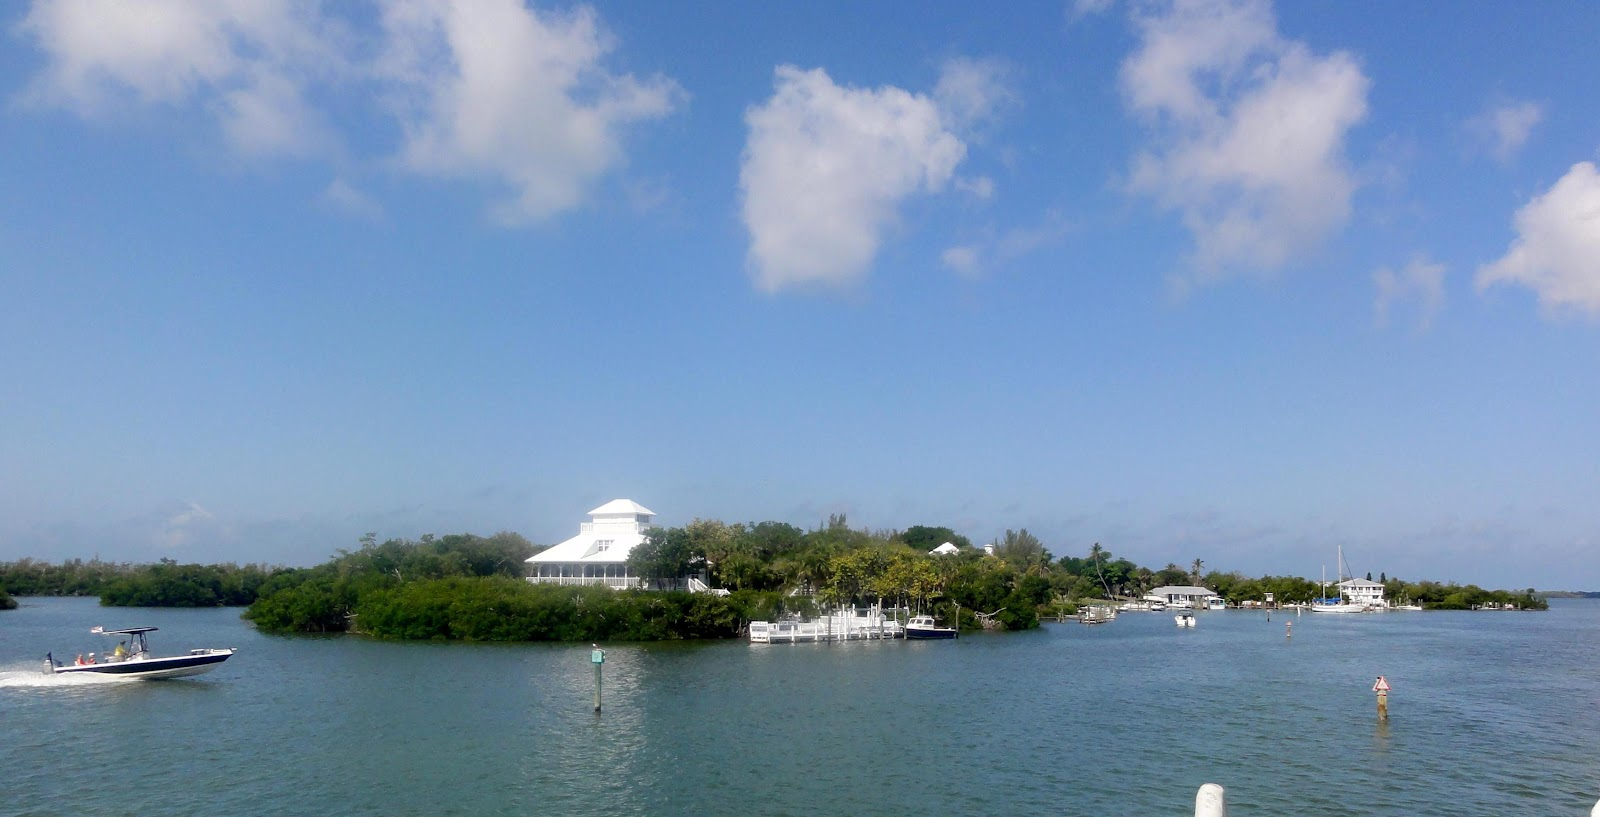 out to Cabbage Key to try